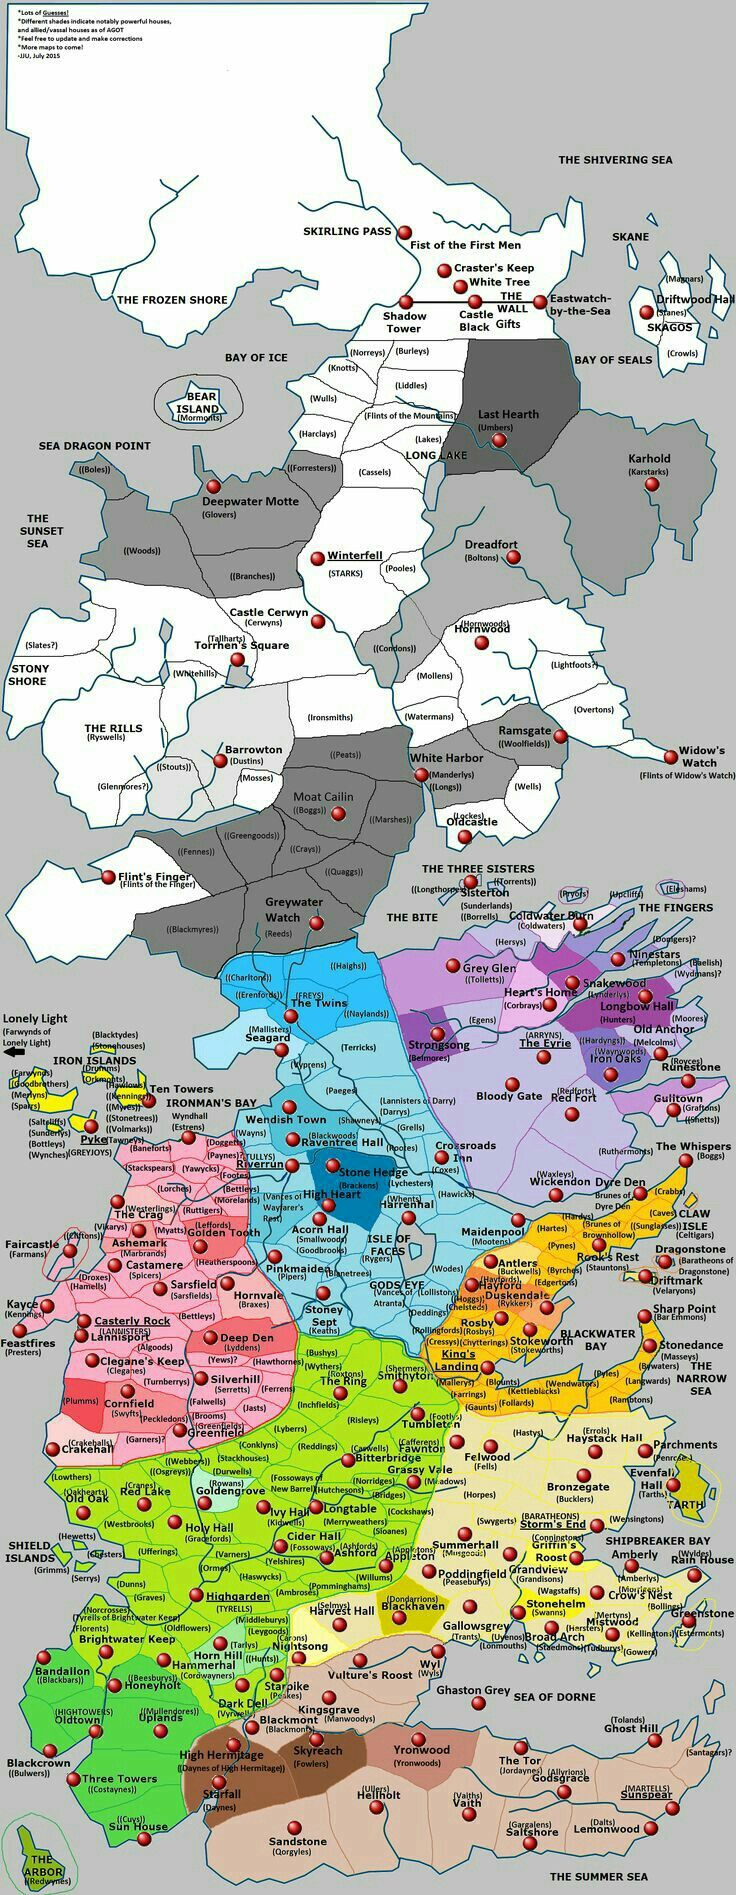 Westeros, Essos and The Known World of Game of Thrones, Google...